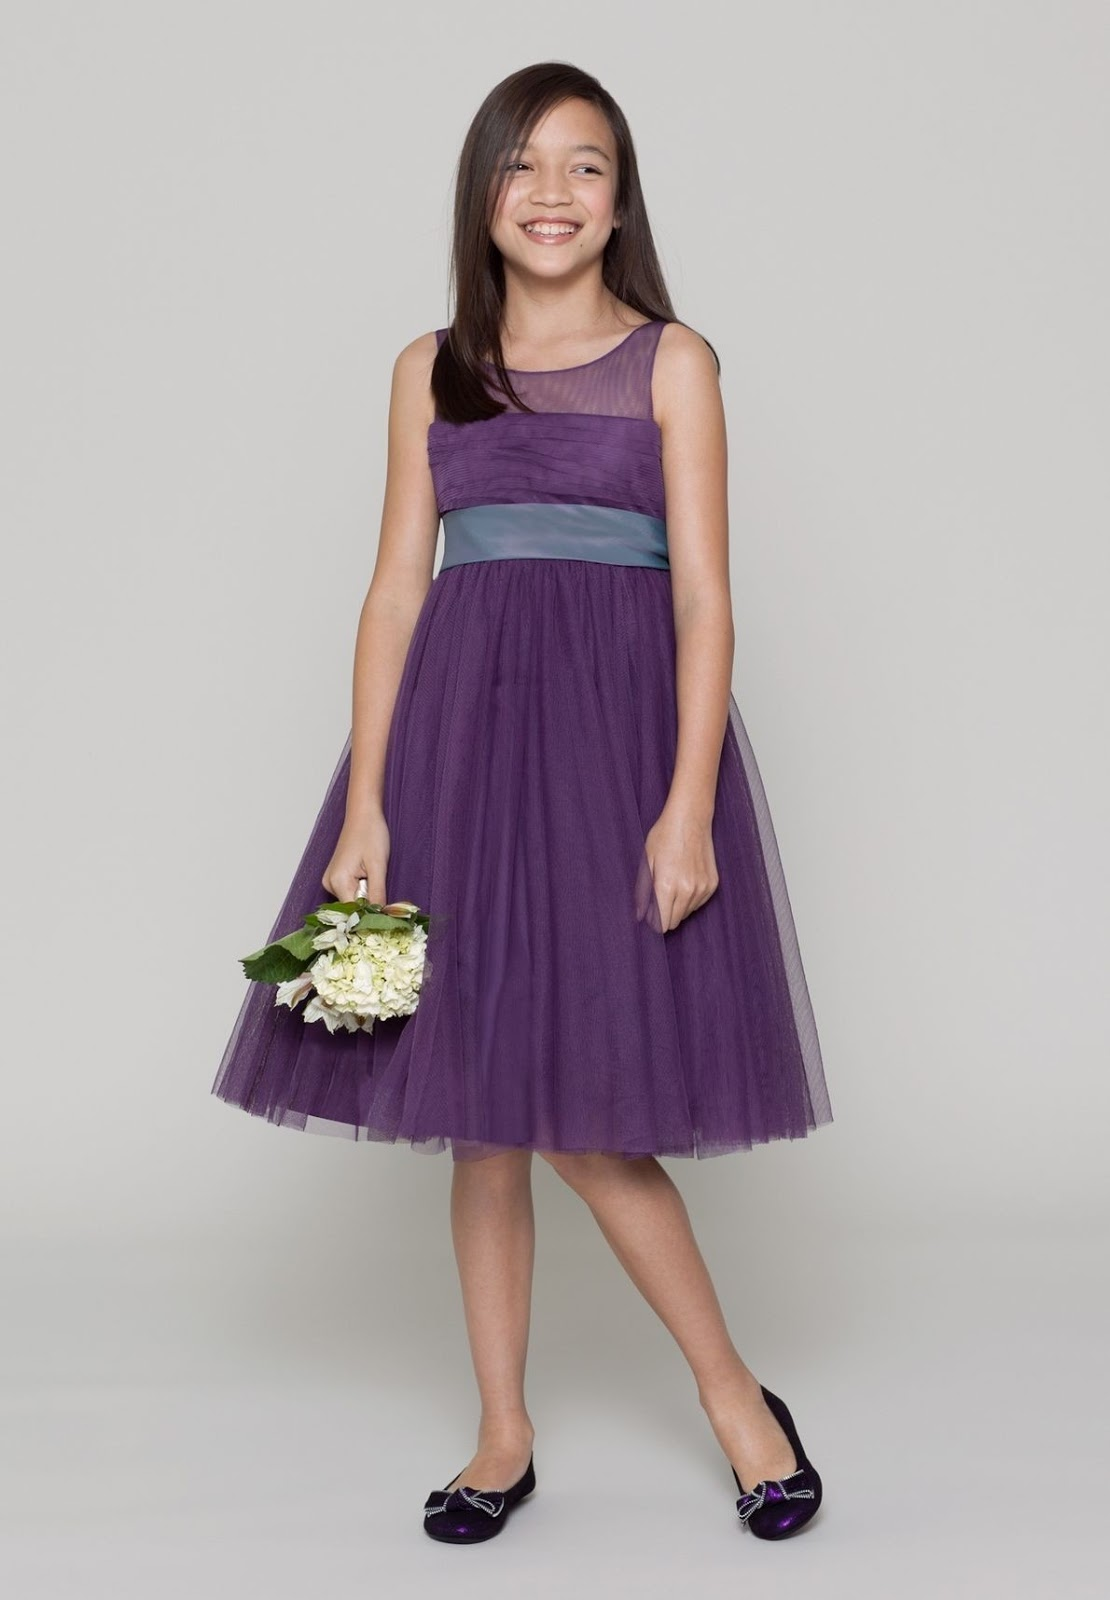 Fullsize Of Jr Bridesmaid Dresses